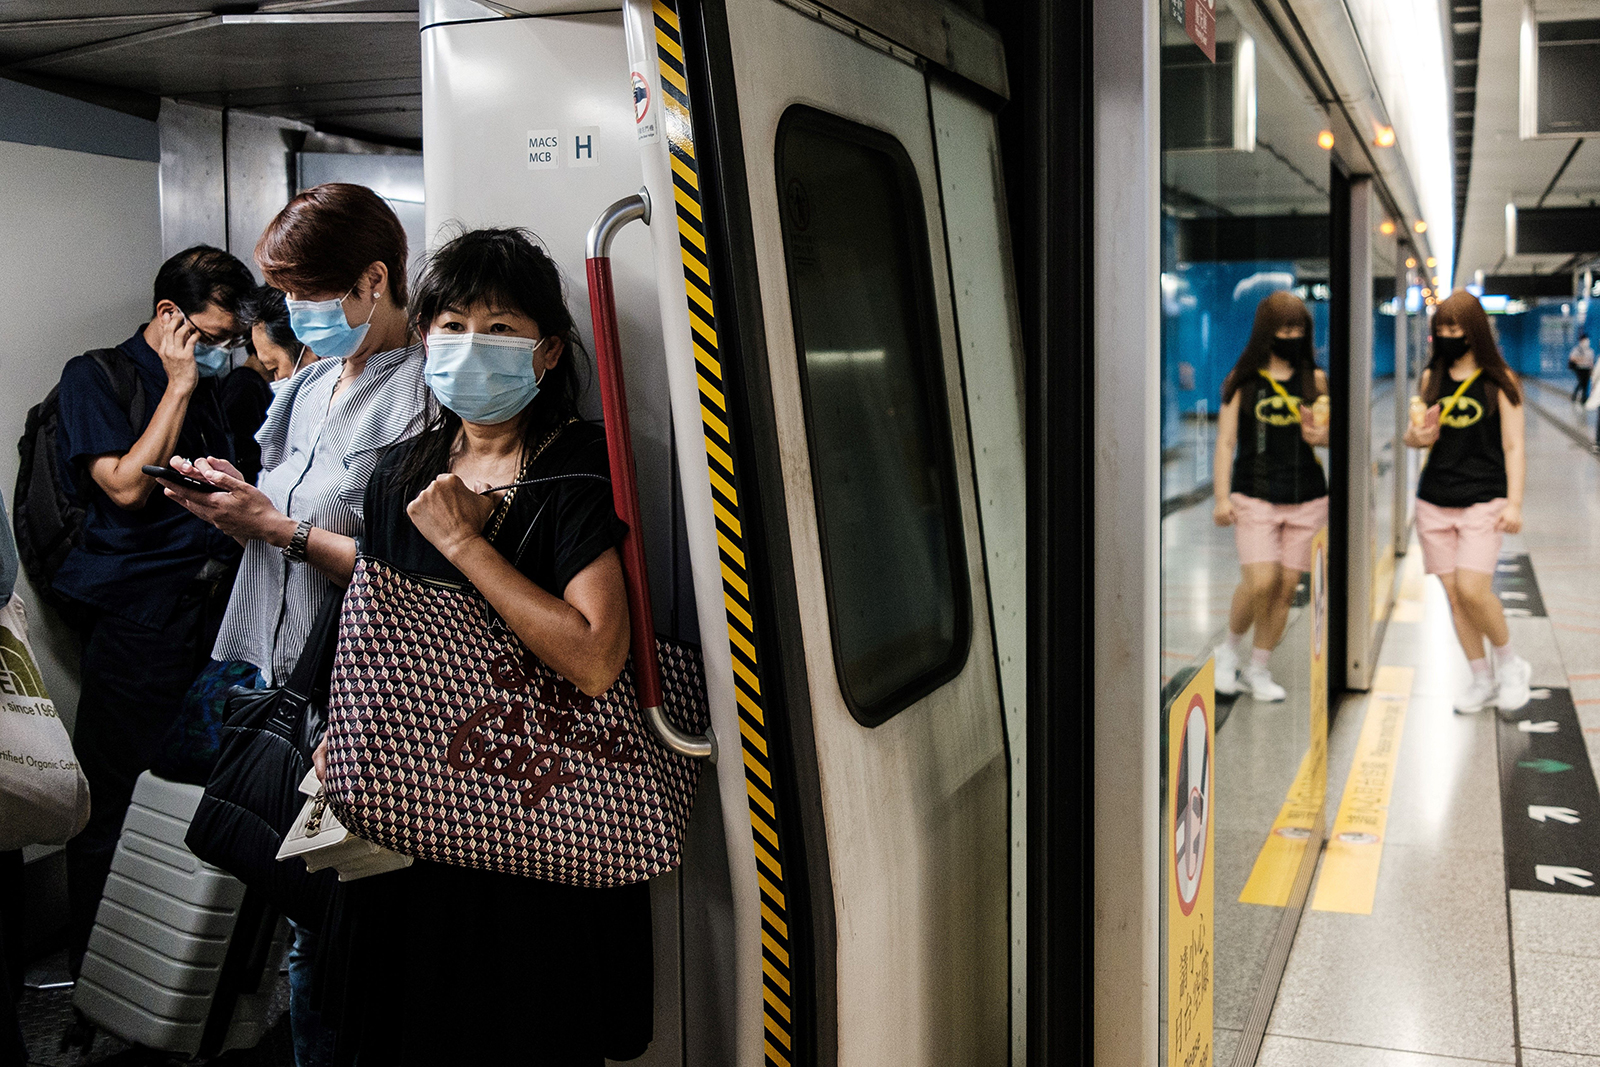 Commuters wear face masks on a metro train in Hong Kong on July 15.